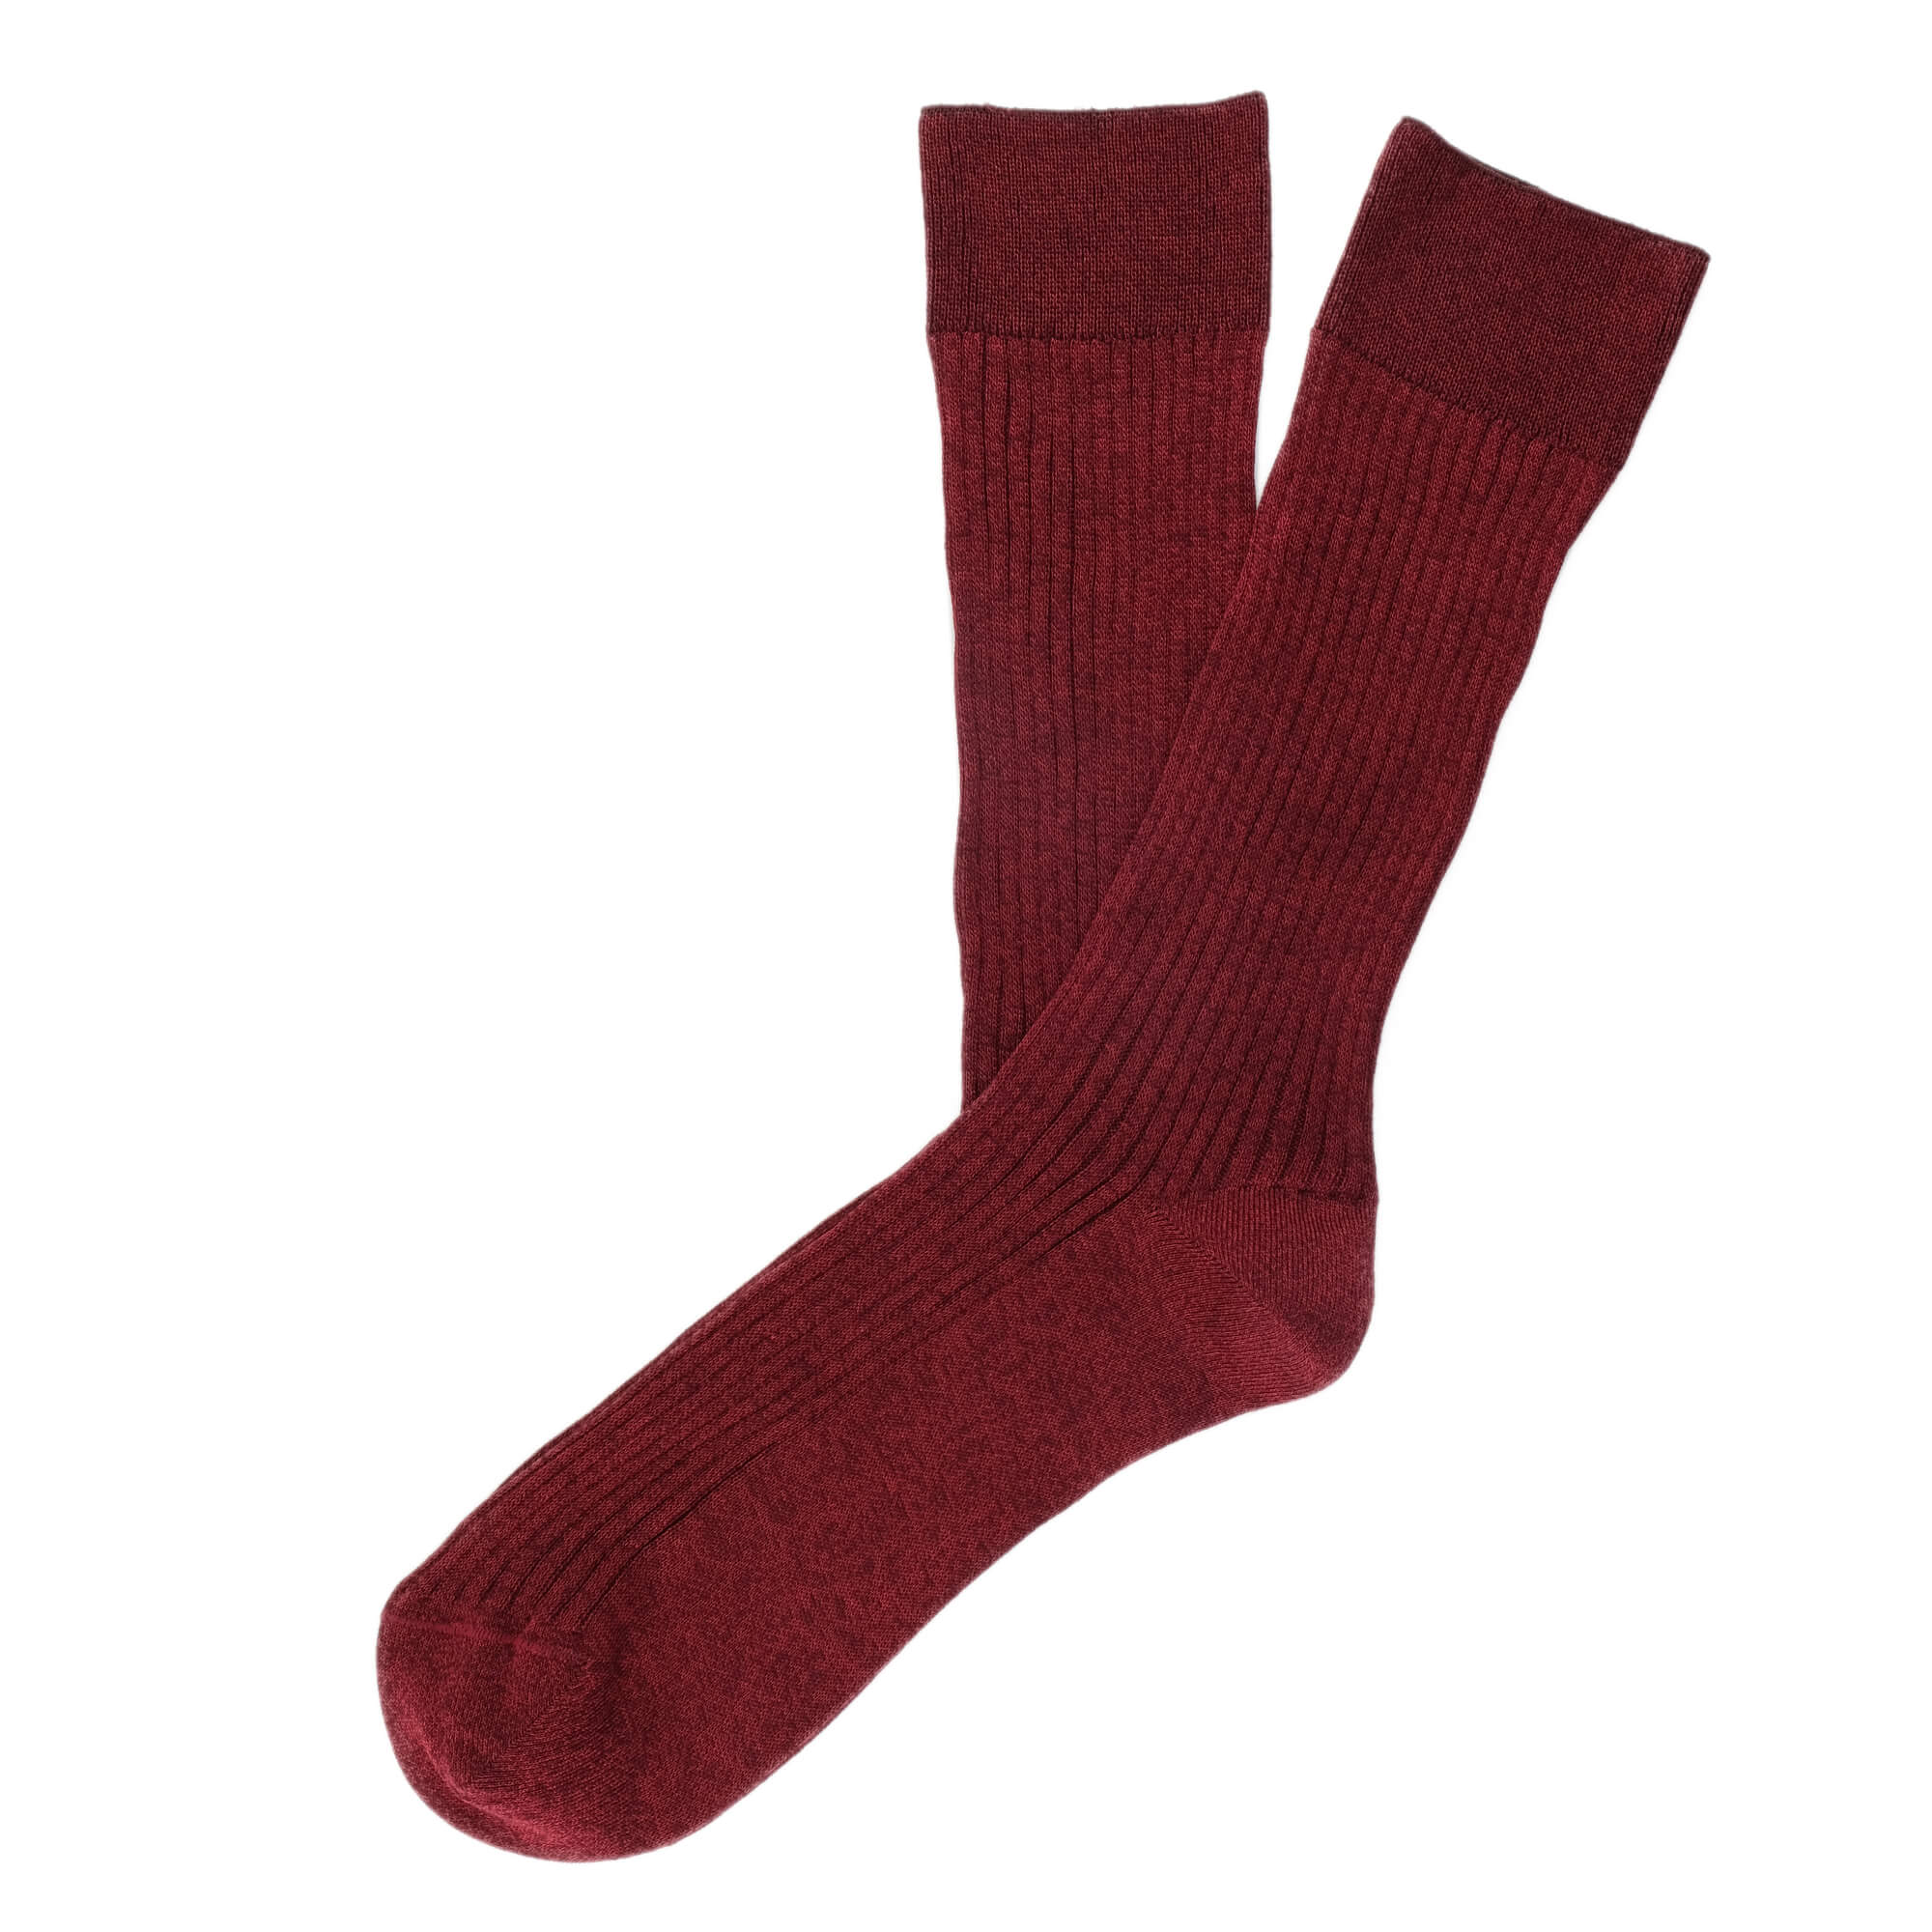 Mens Socks - Thousand Ribs Men's Socks - Bordeaux⎪Etiquette Clothiers